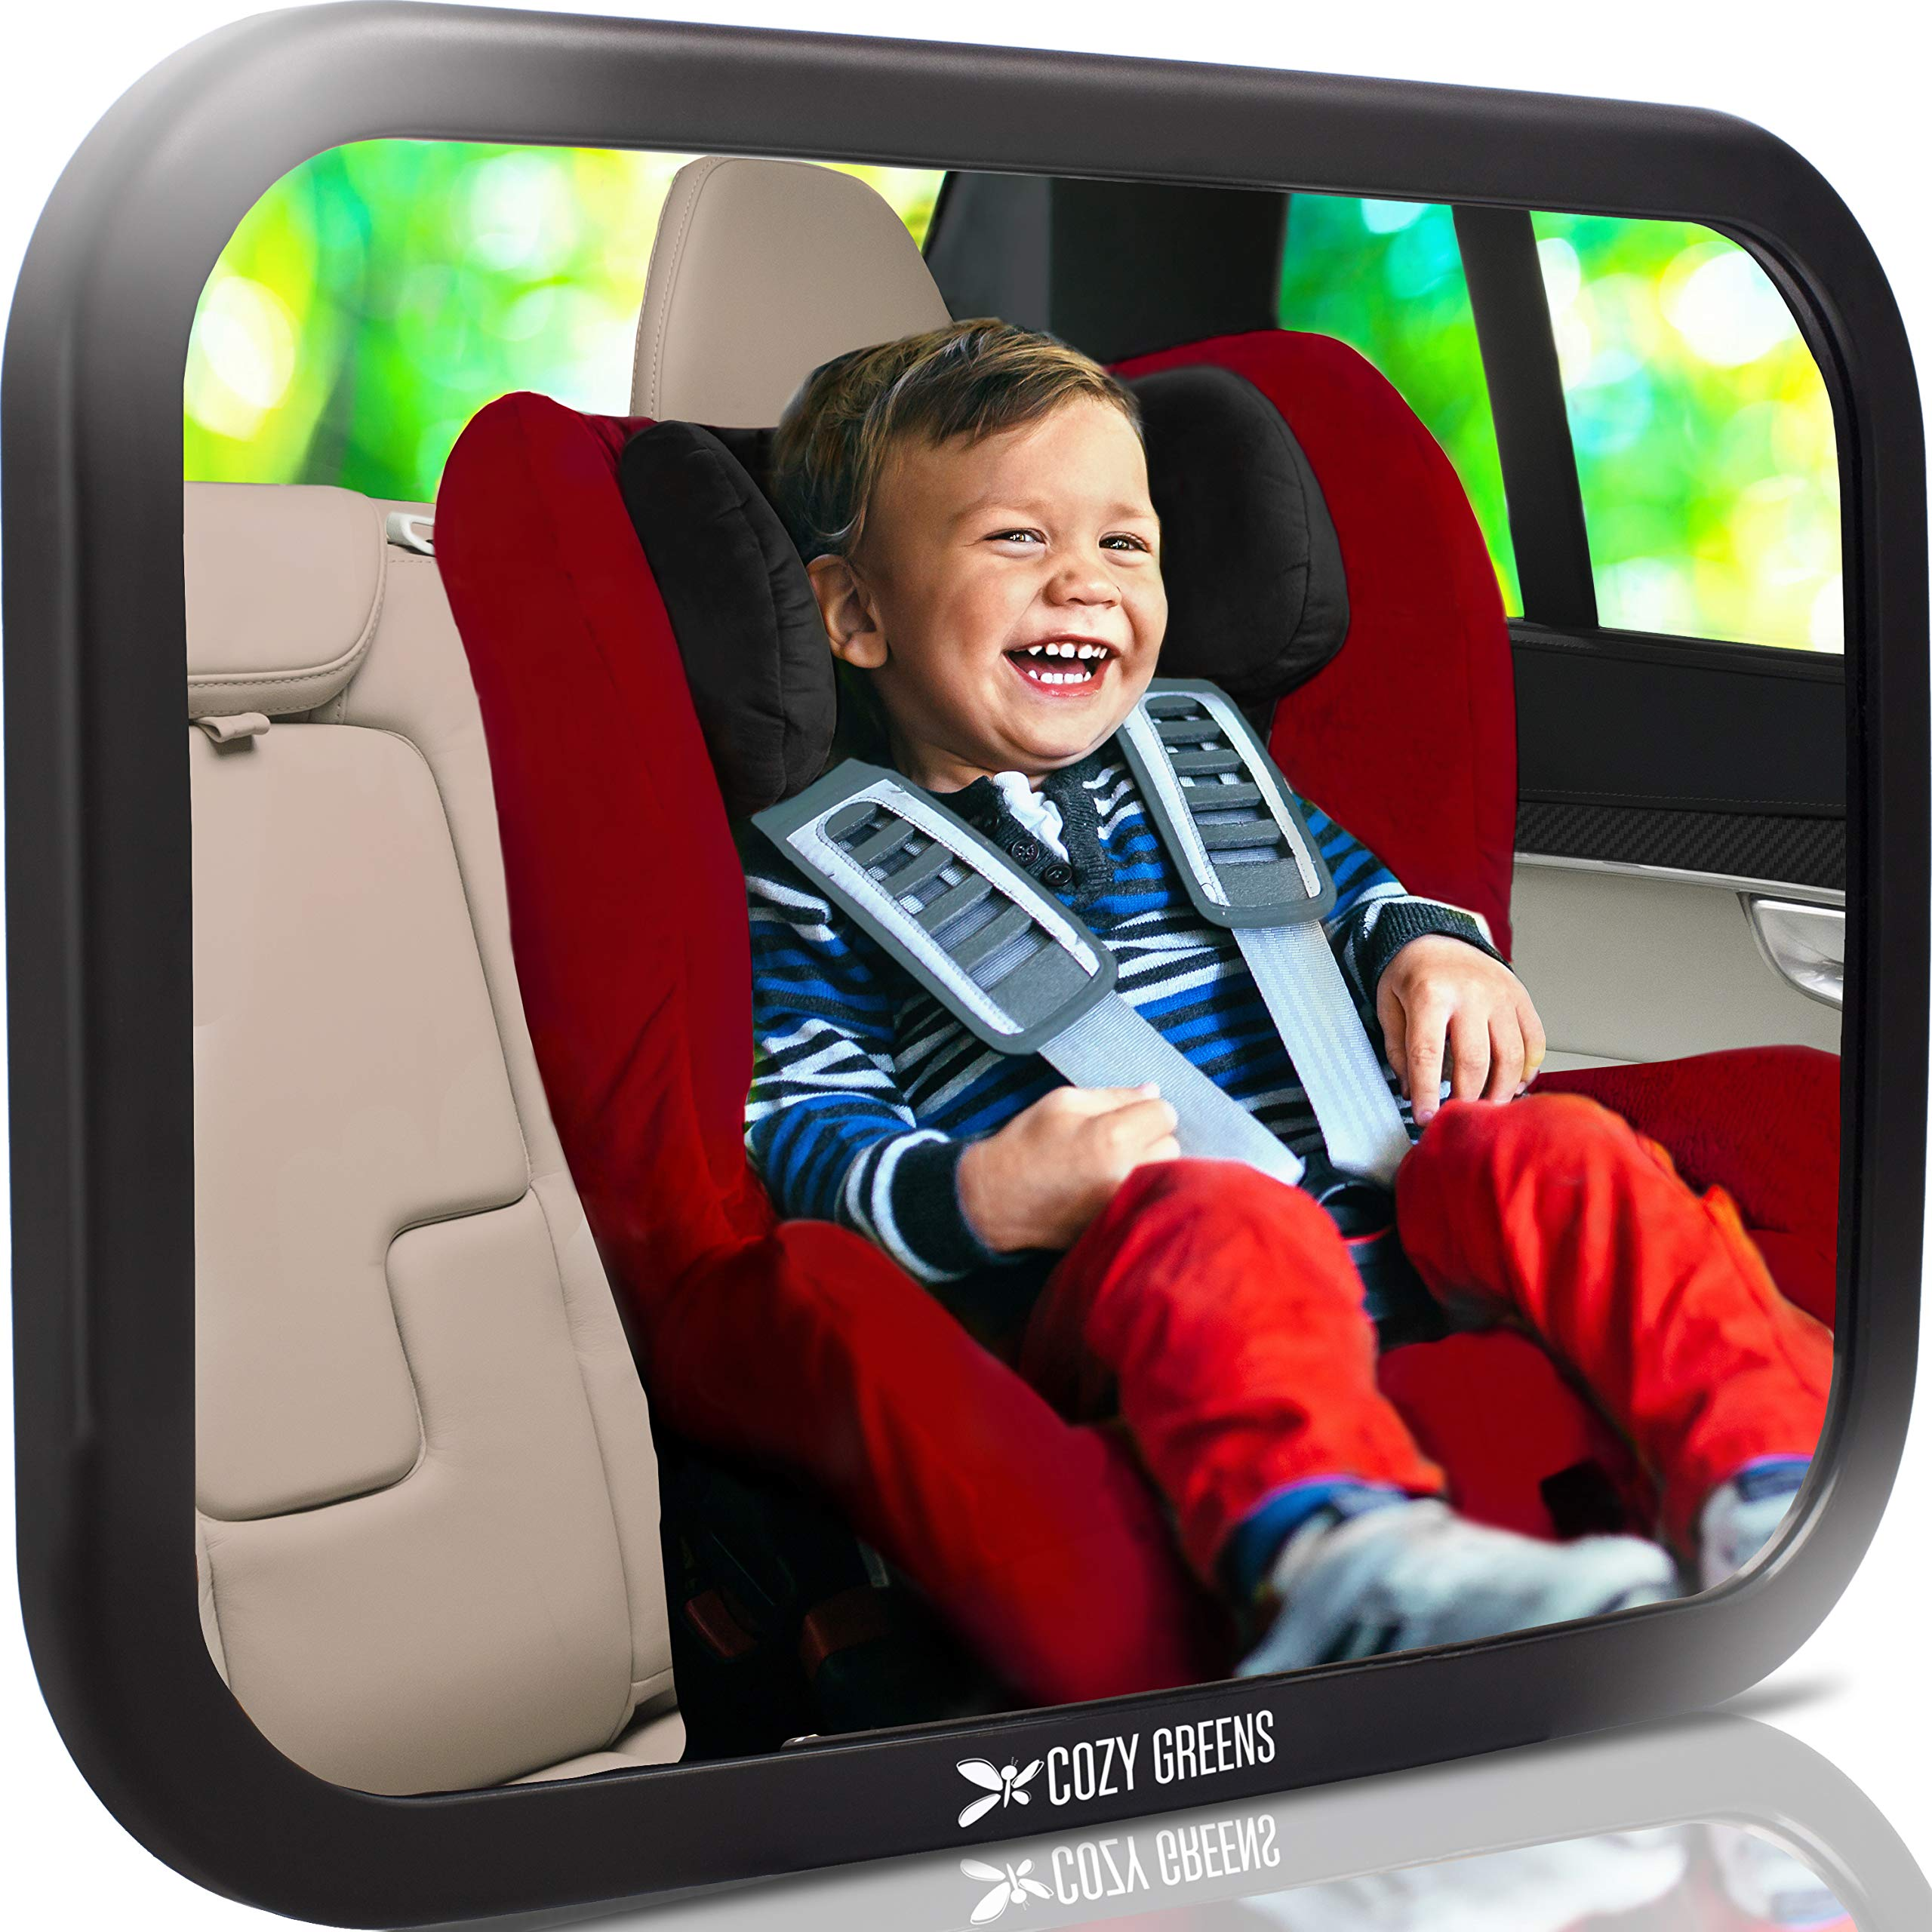 COZY GREENS Baby Car Mirror | Most Stable | View Infant in Rear Facing Seat | 100% Lifetime Satisfaction Guarantee | Shatterproof & Crash Tested | Best Newborn Safety| Backseat Mirror for Back Seat by COZY GREENS